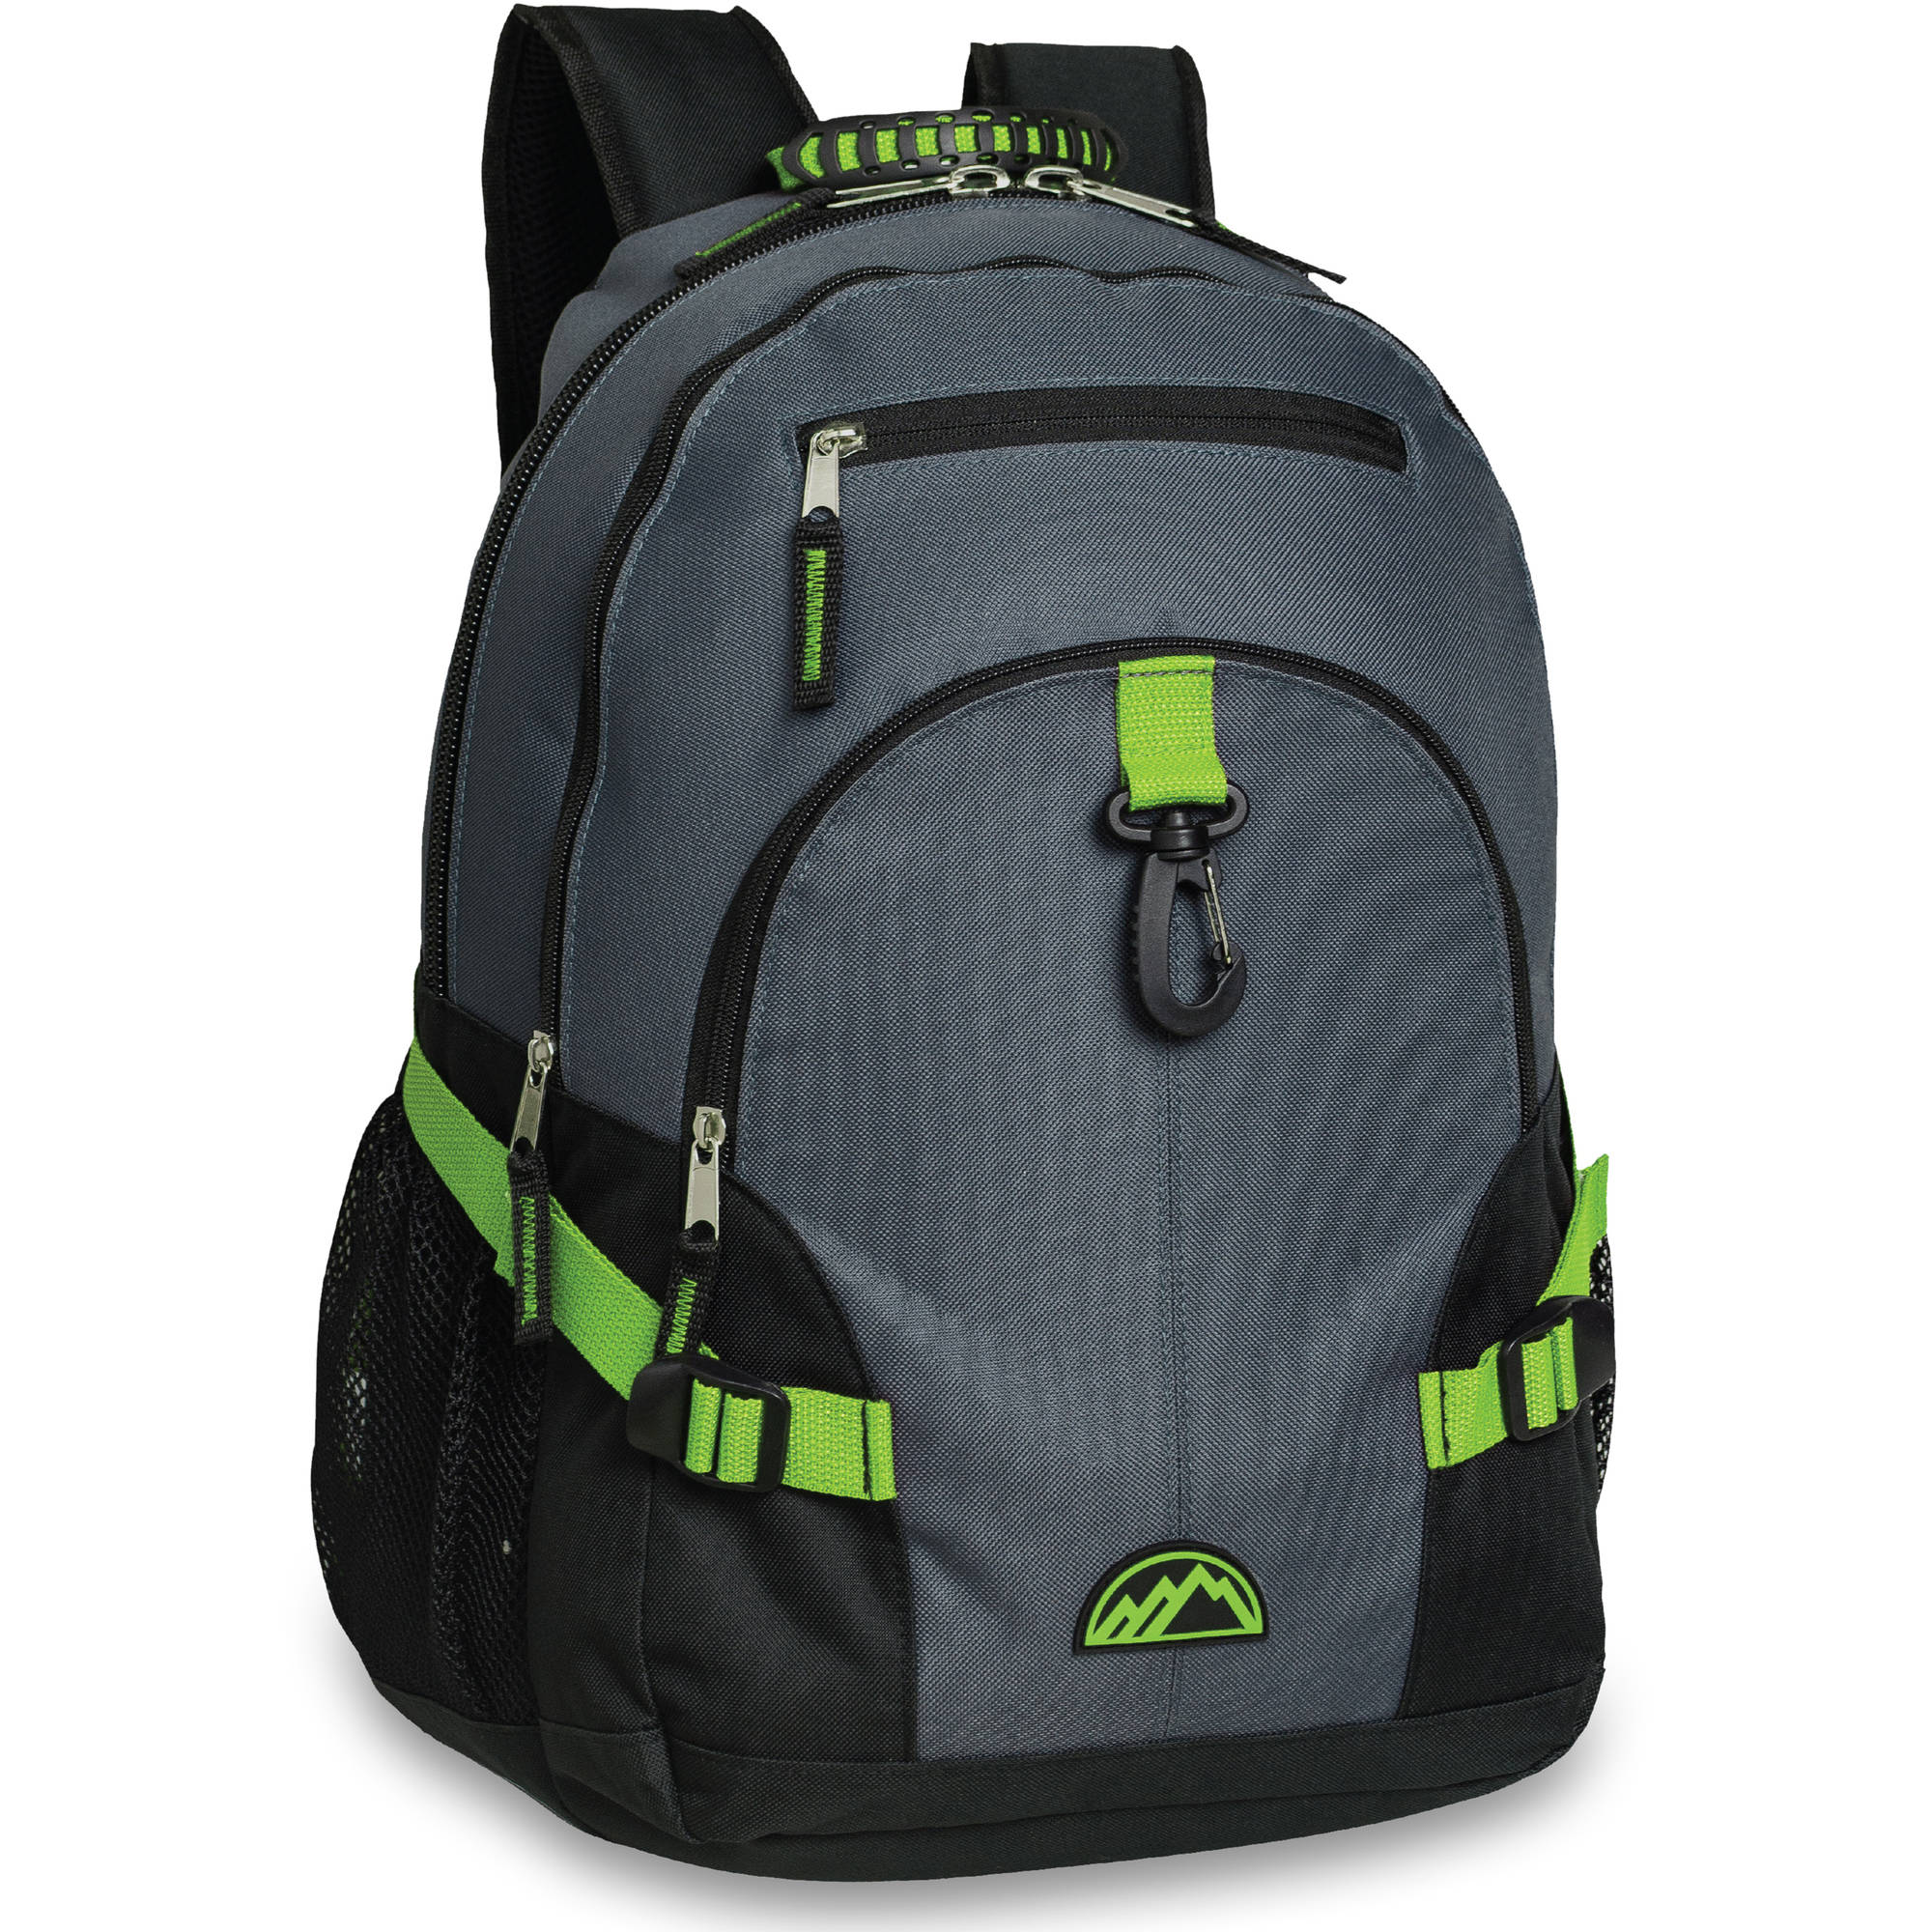 Deluxe 18 Inch Multi Section Backpack With Carabineer Clip & Compression Buckles